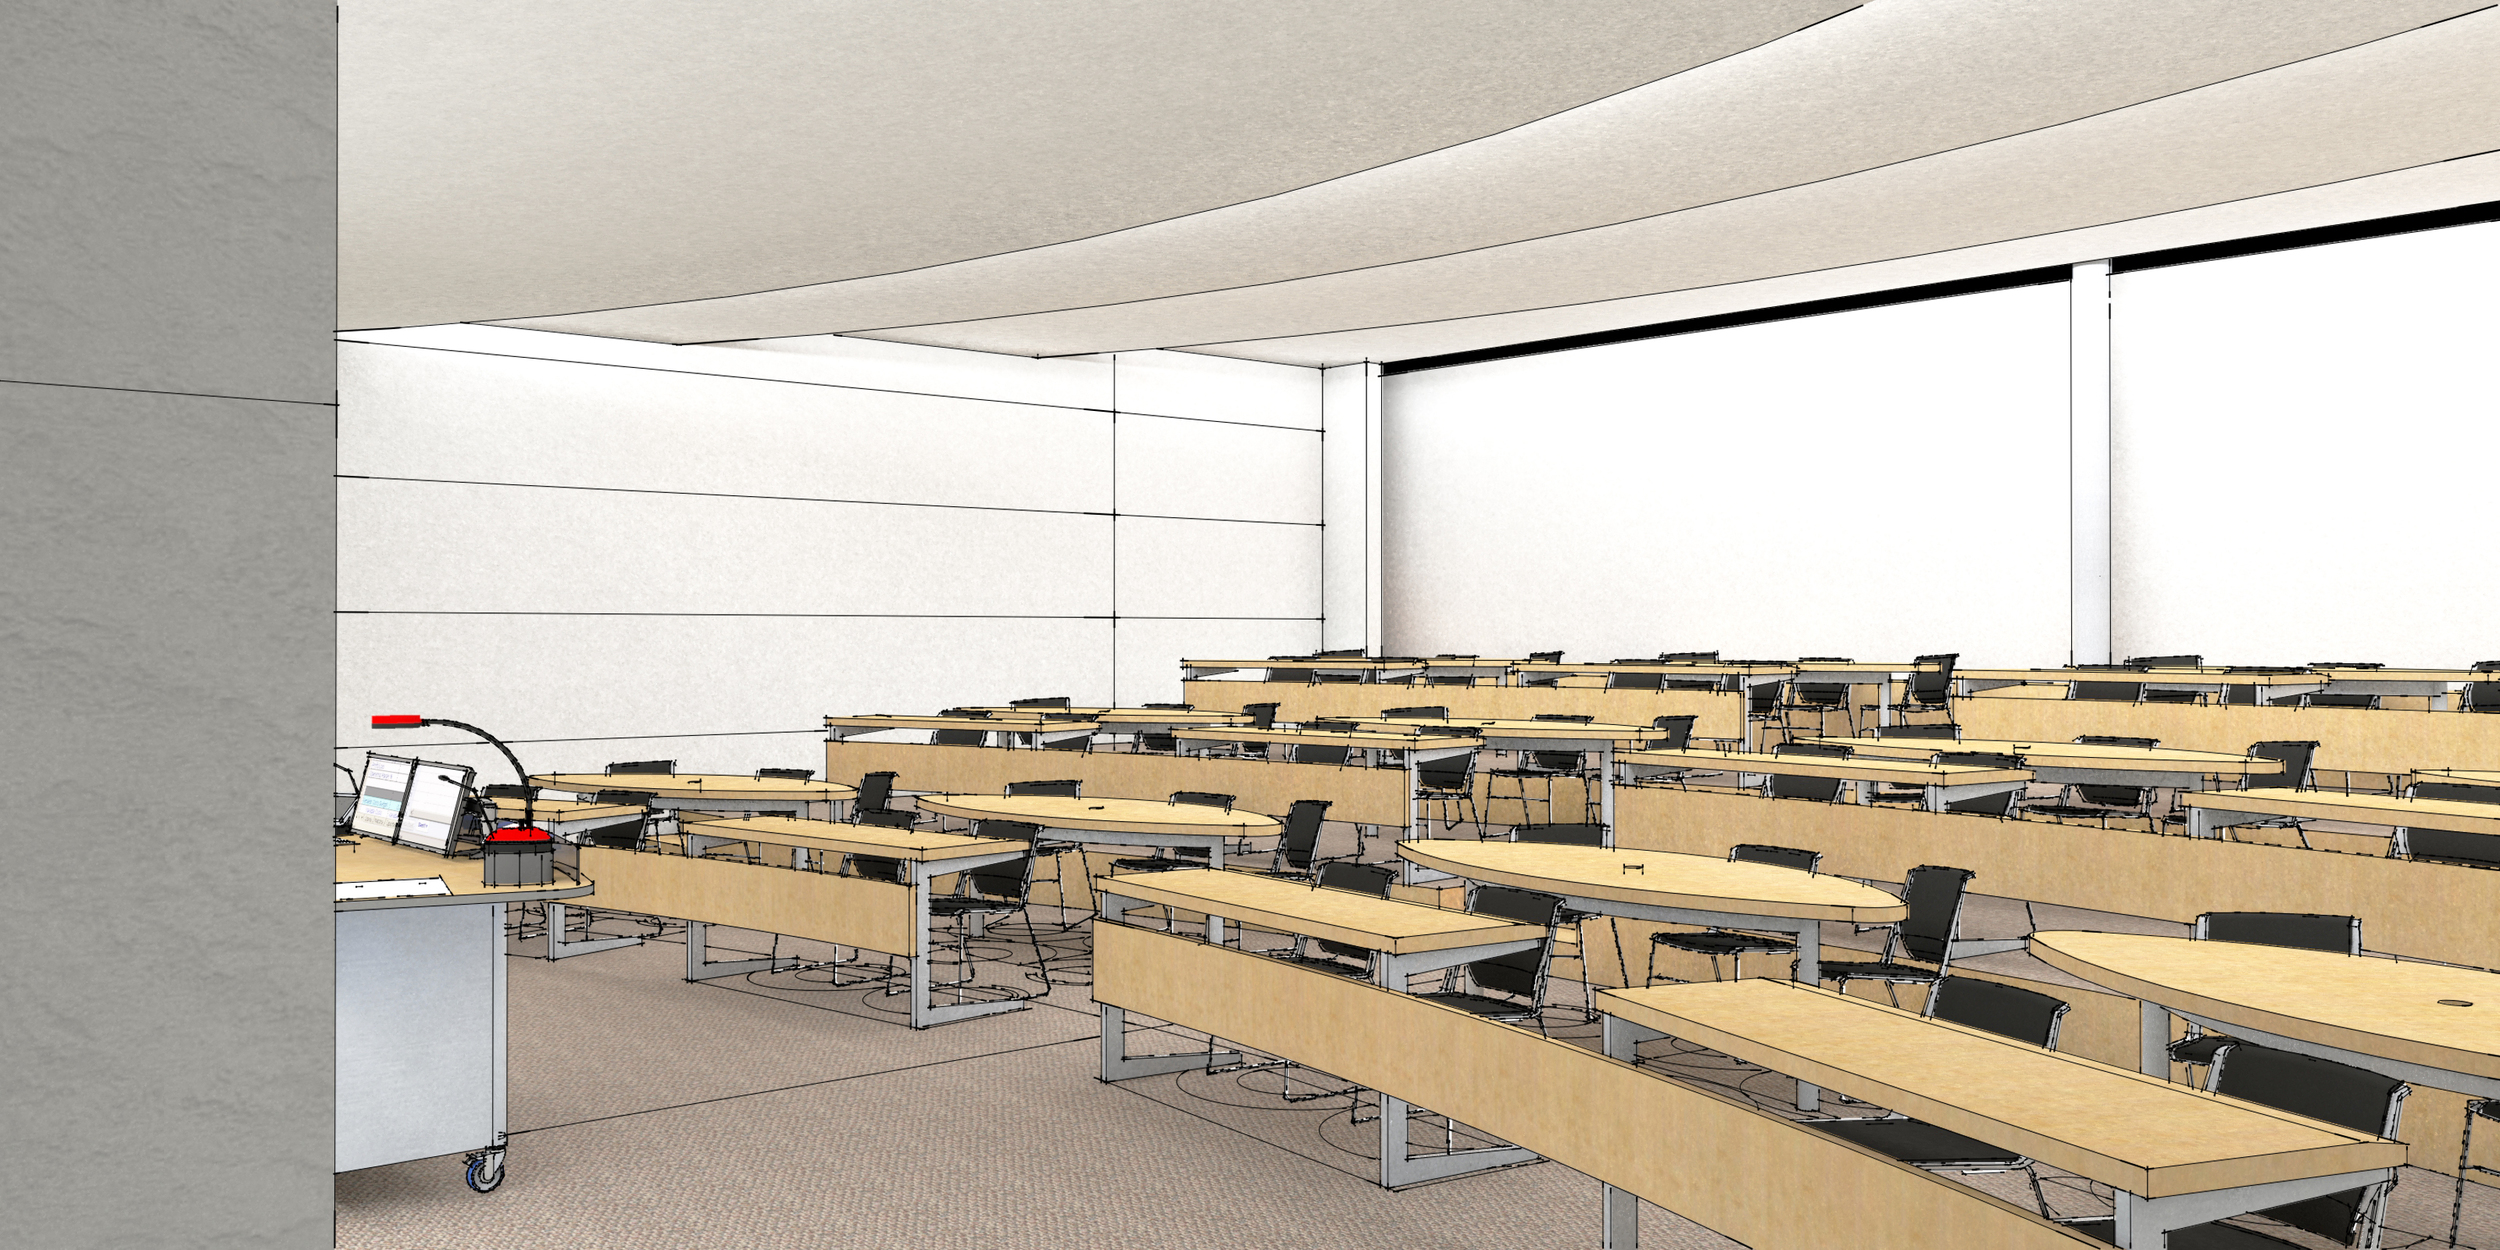 BFLC_lecture hall 2.jpg